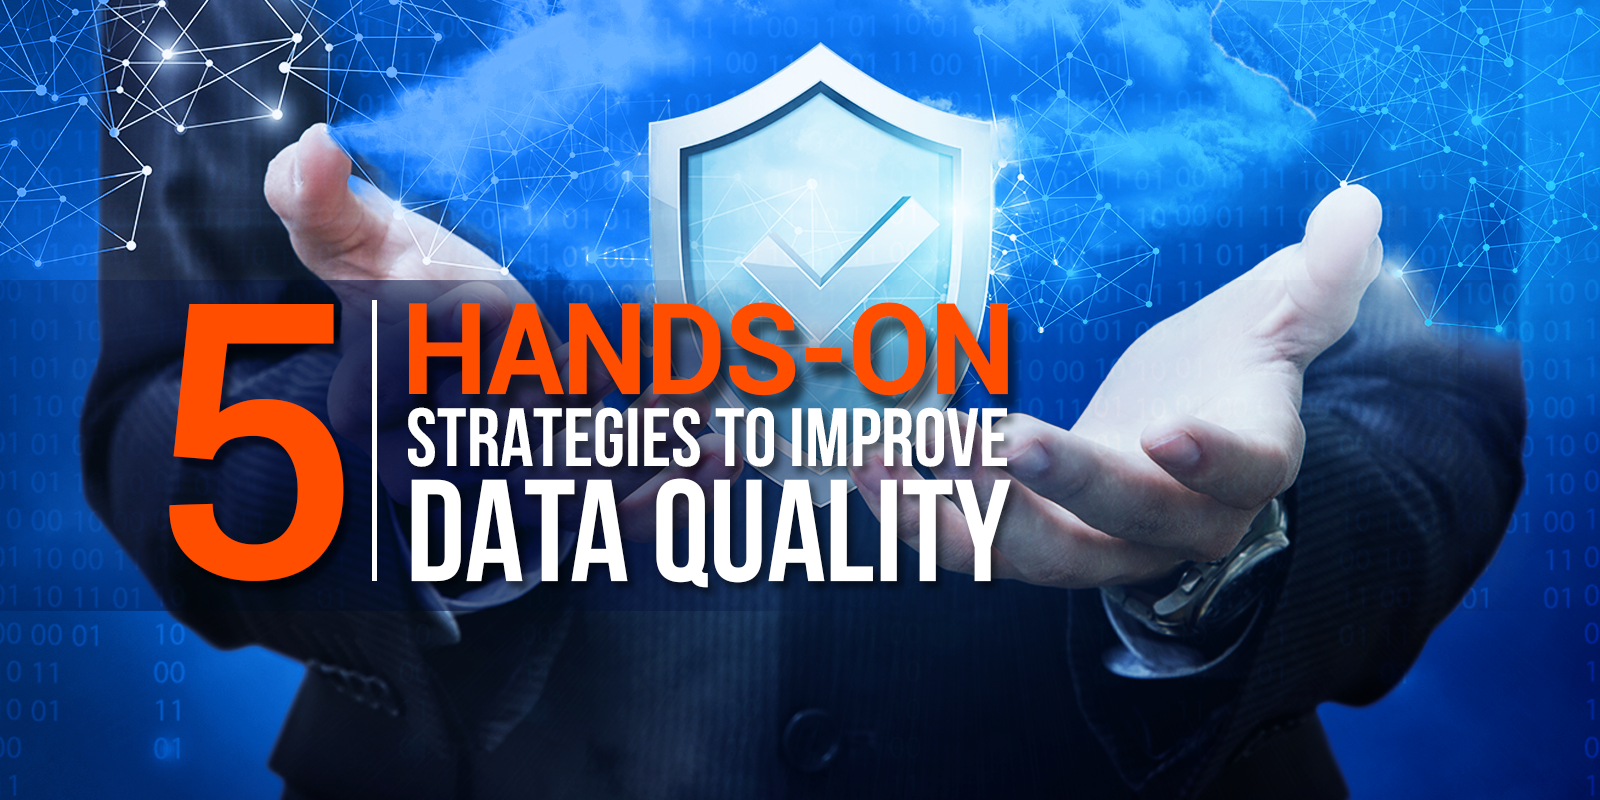 ​5 Hands-On Strategies to Improve Data Quality